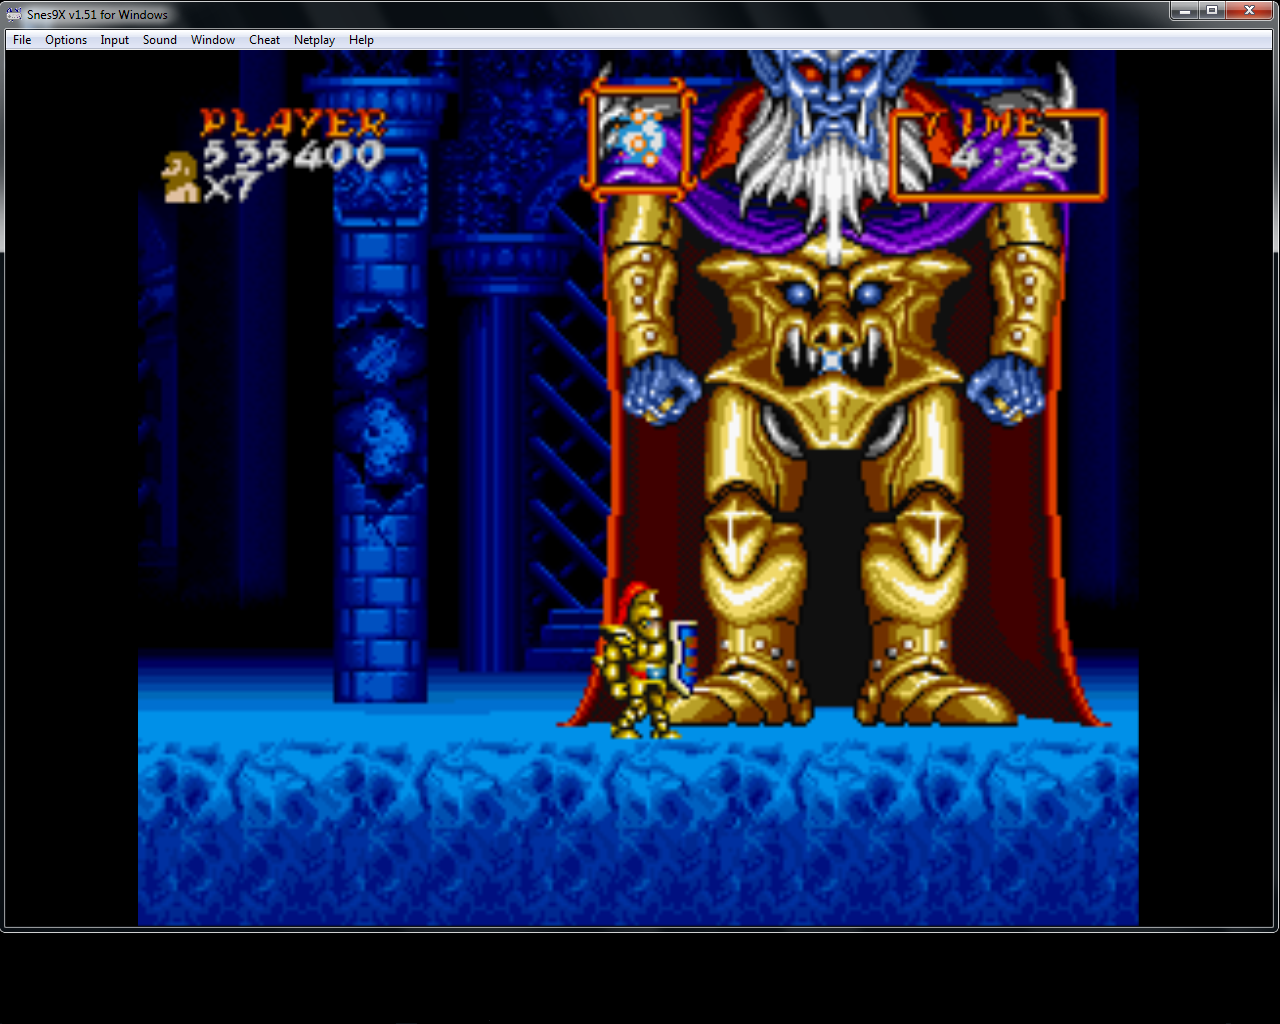 bubufubu: Super Ghouls N Ghosts (SNES/Super Famicom Emulated) 535,400 points on 2015-04-16 21:16:59